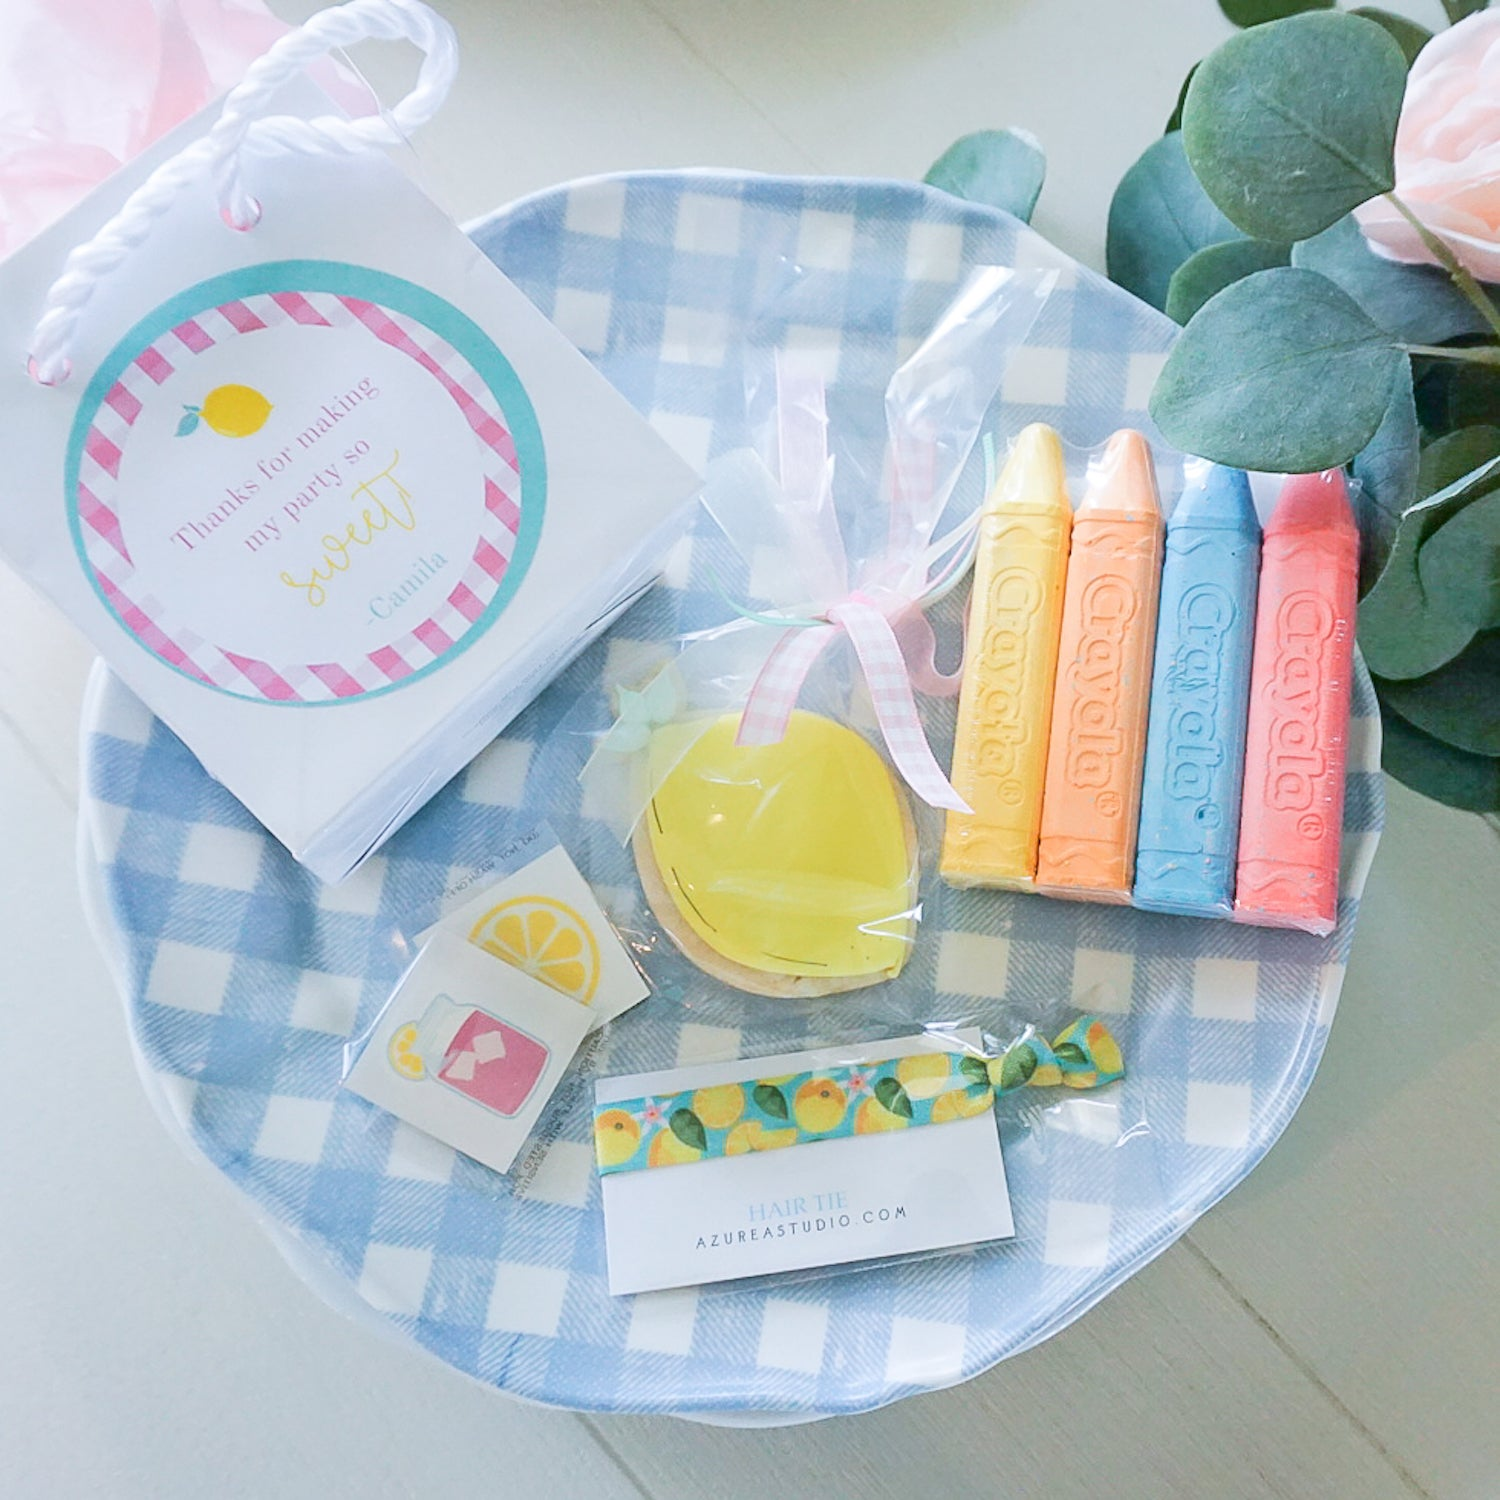 Meg Mason, mothers share - Celebrating the magic of childhood - Lemon and gingham birthday party